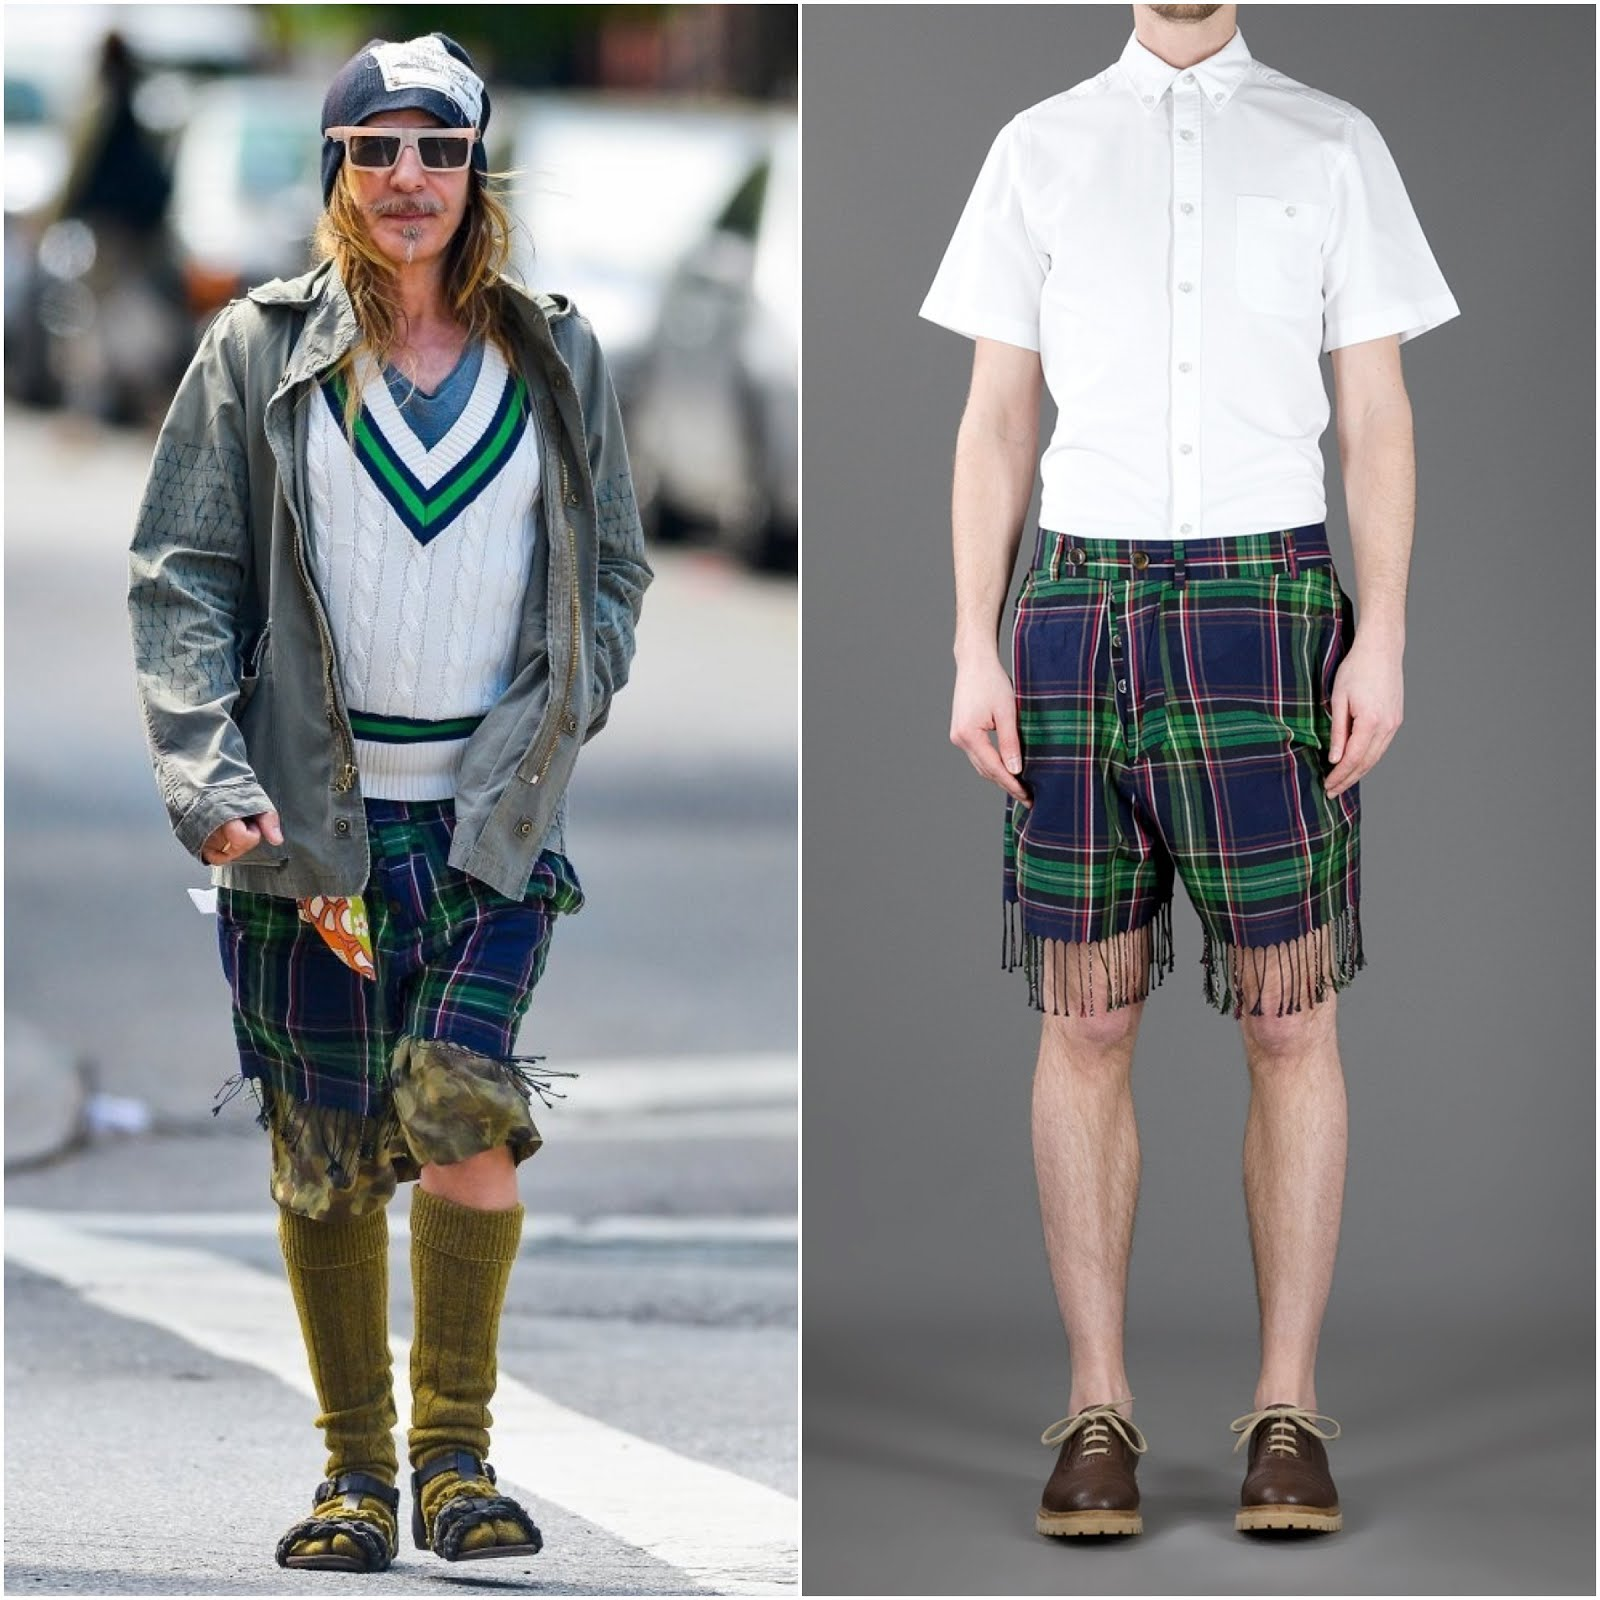 00O00 Menswear Blog - Grace Coddington with John Galliano in New York. John Galliano wore Vivienne Westwood blue plaid checked tasselled shorts, May 2013